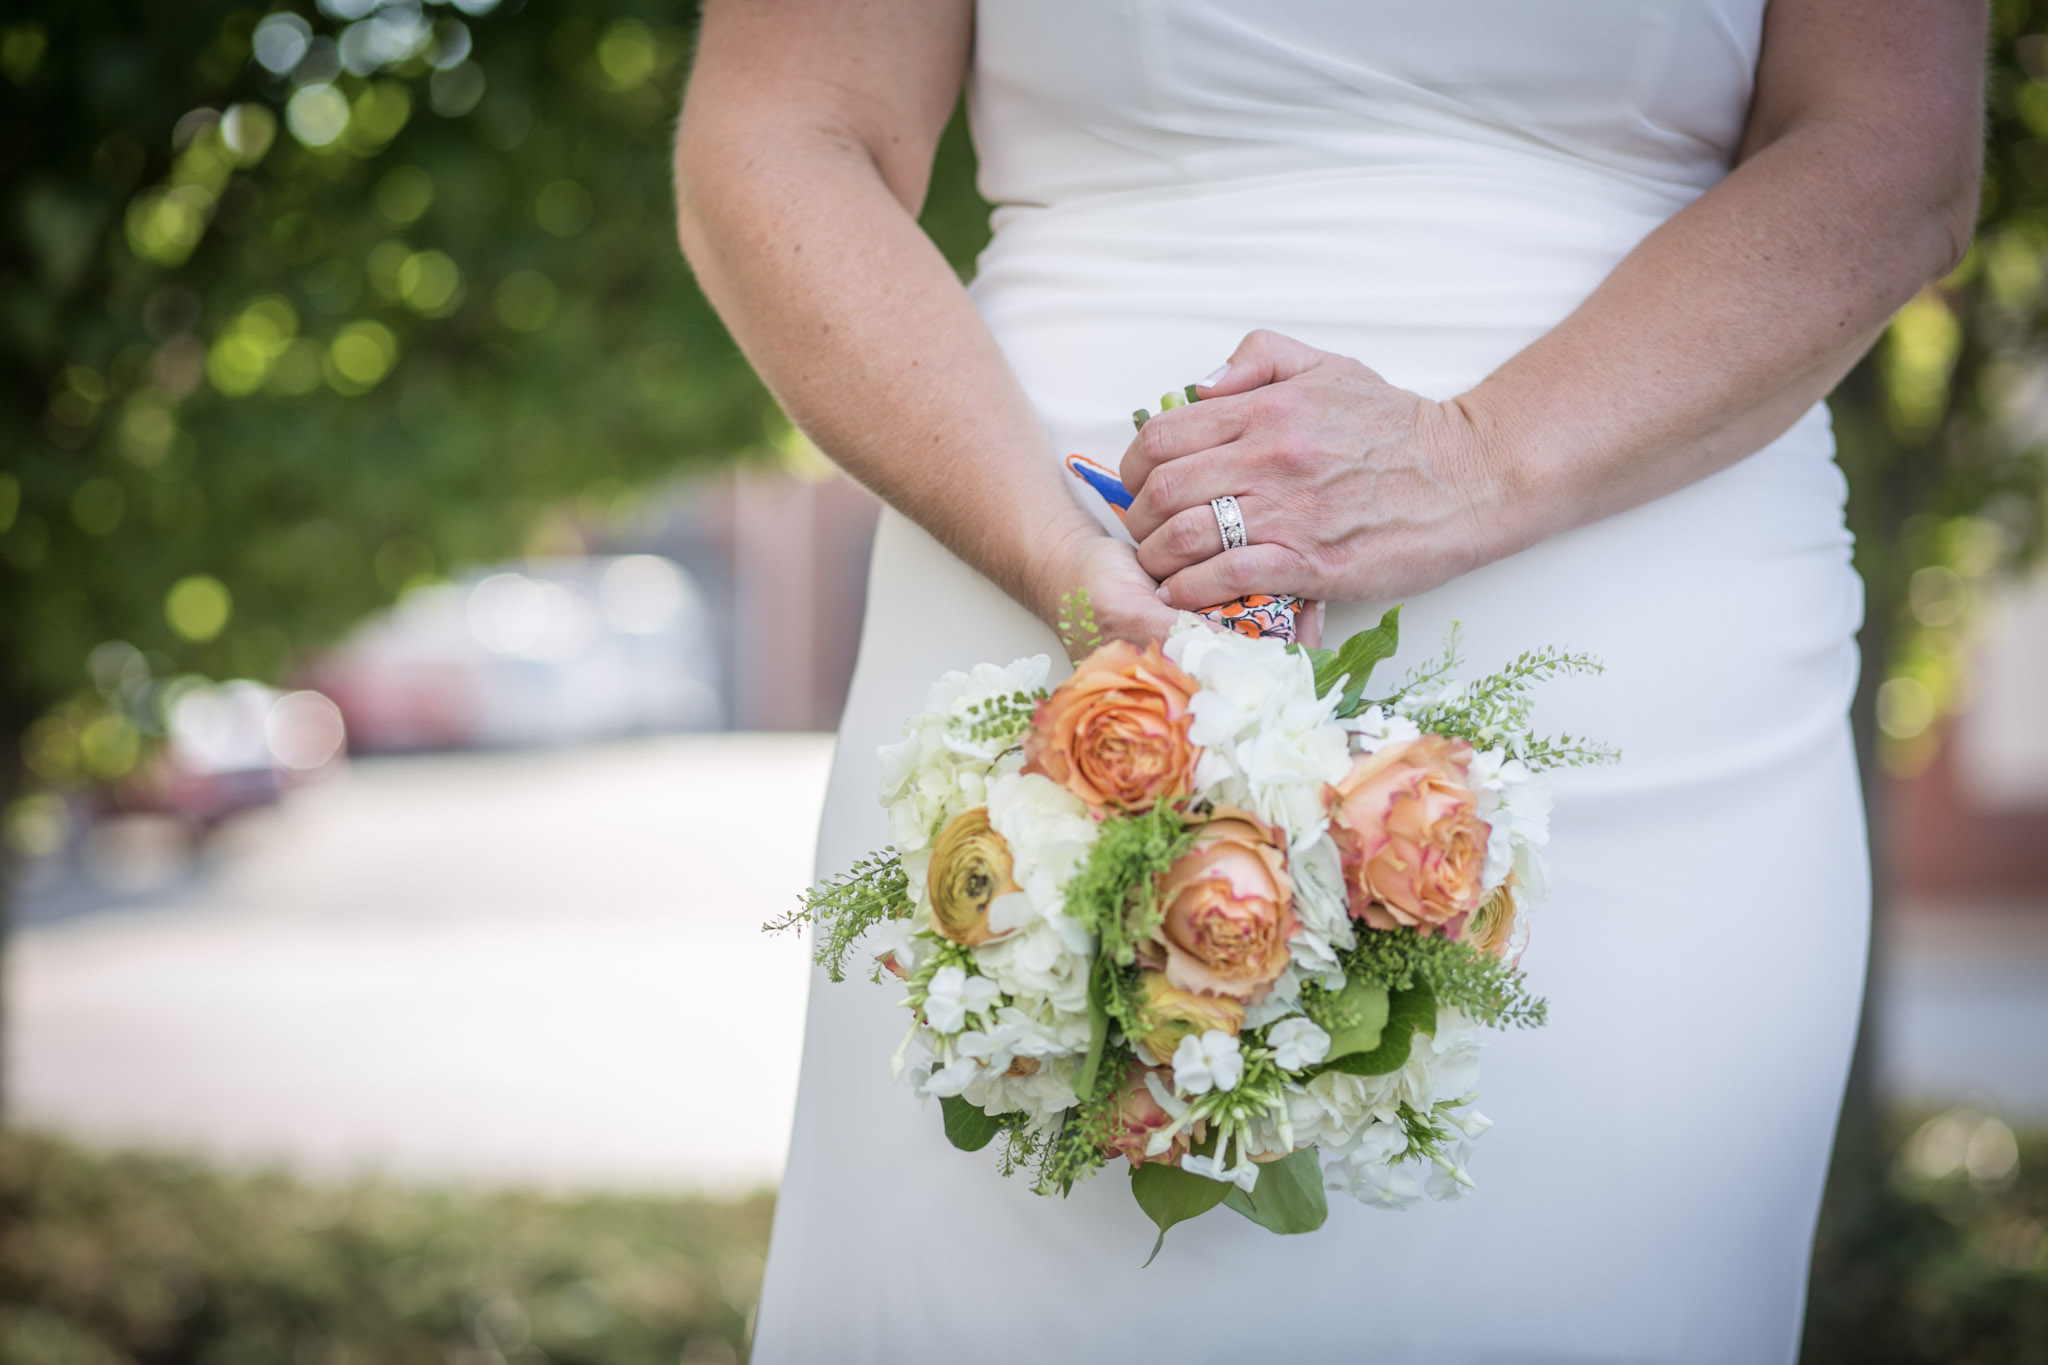 Kansas_City_Small_Wedding_Venue_Elope_Intimate_Ceremony_Budget_Affordable_Summer_Flowers_Carrie&Steve_223.jpg